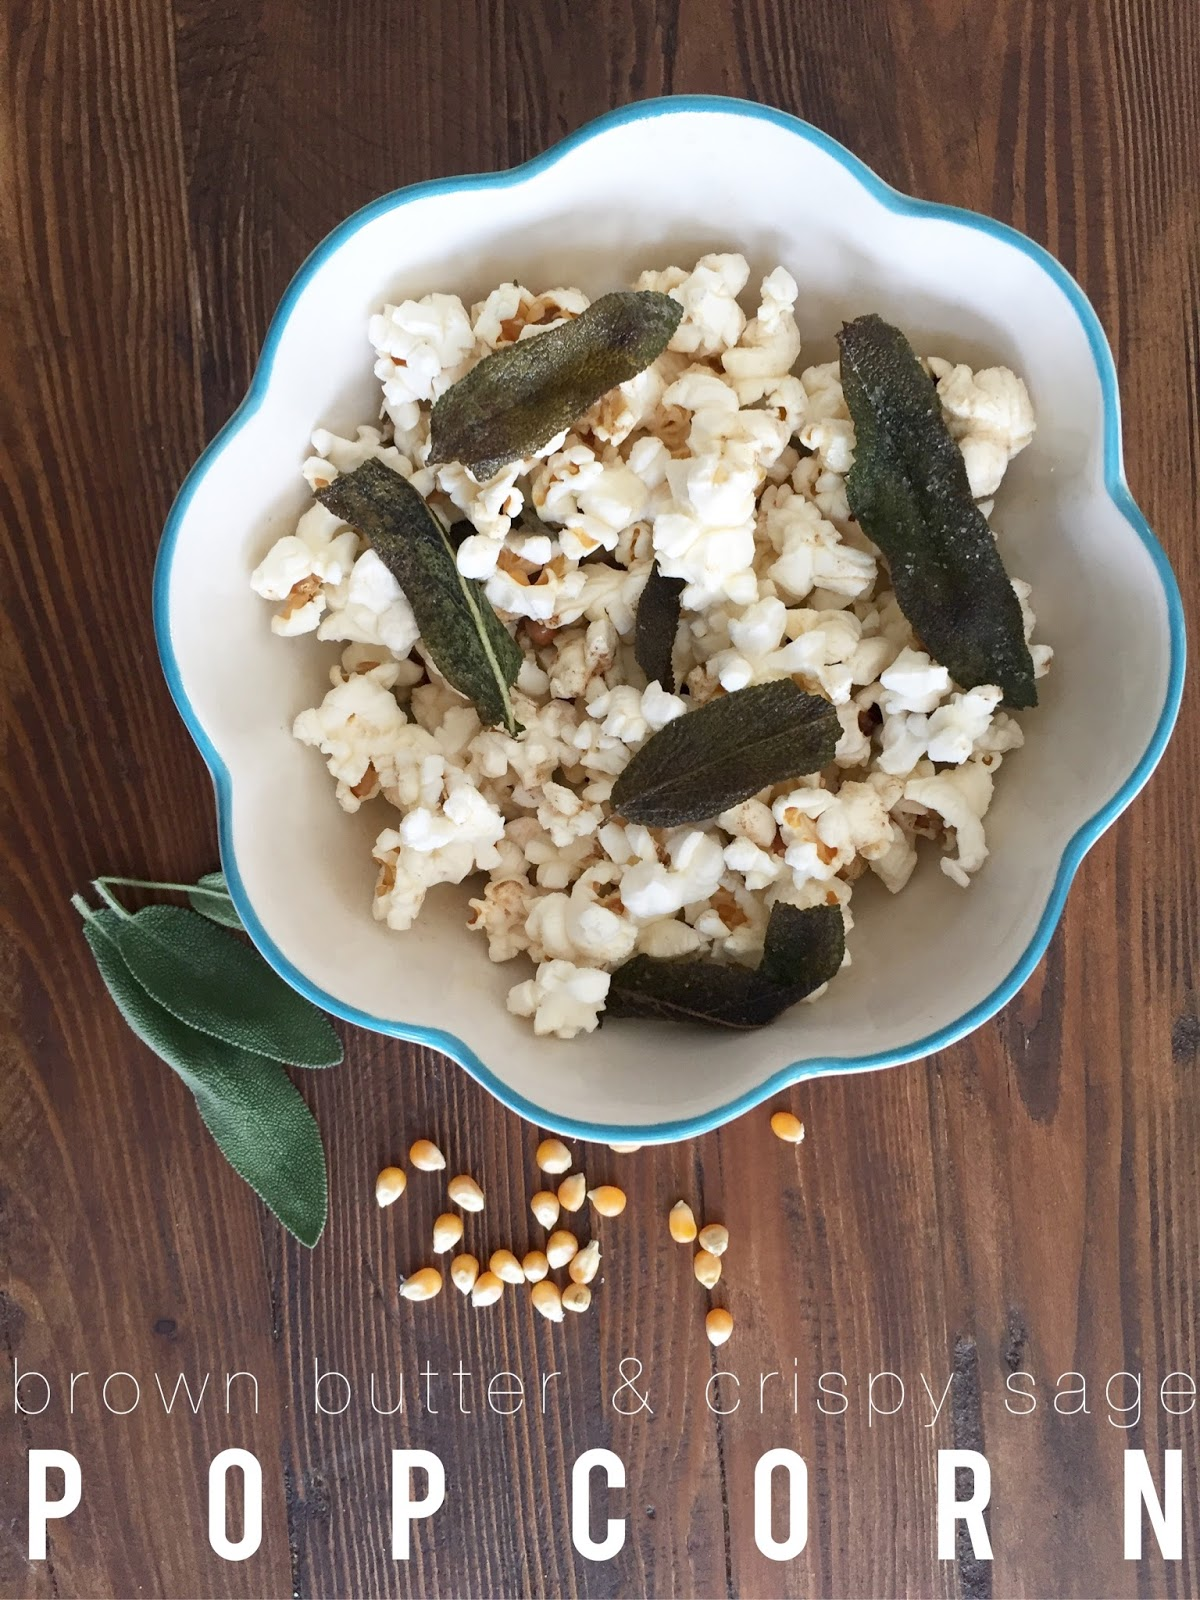 Edible Life in YYC: brown butter & crispy sage popcorn